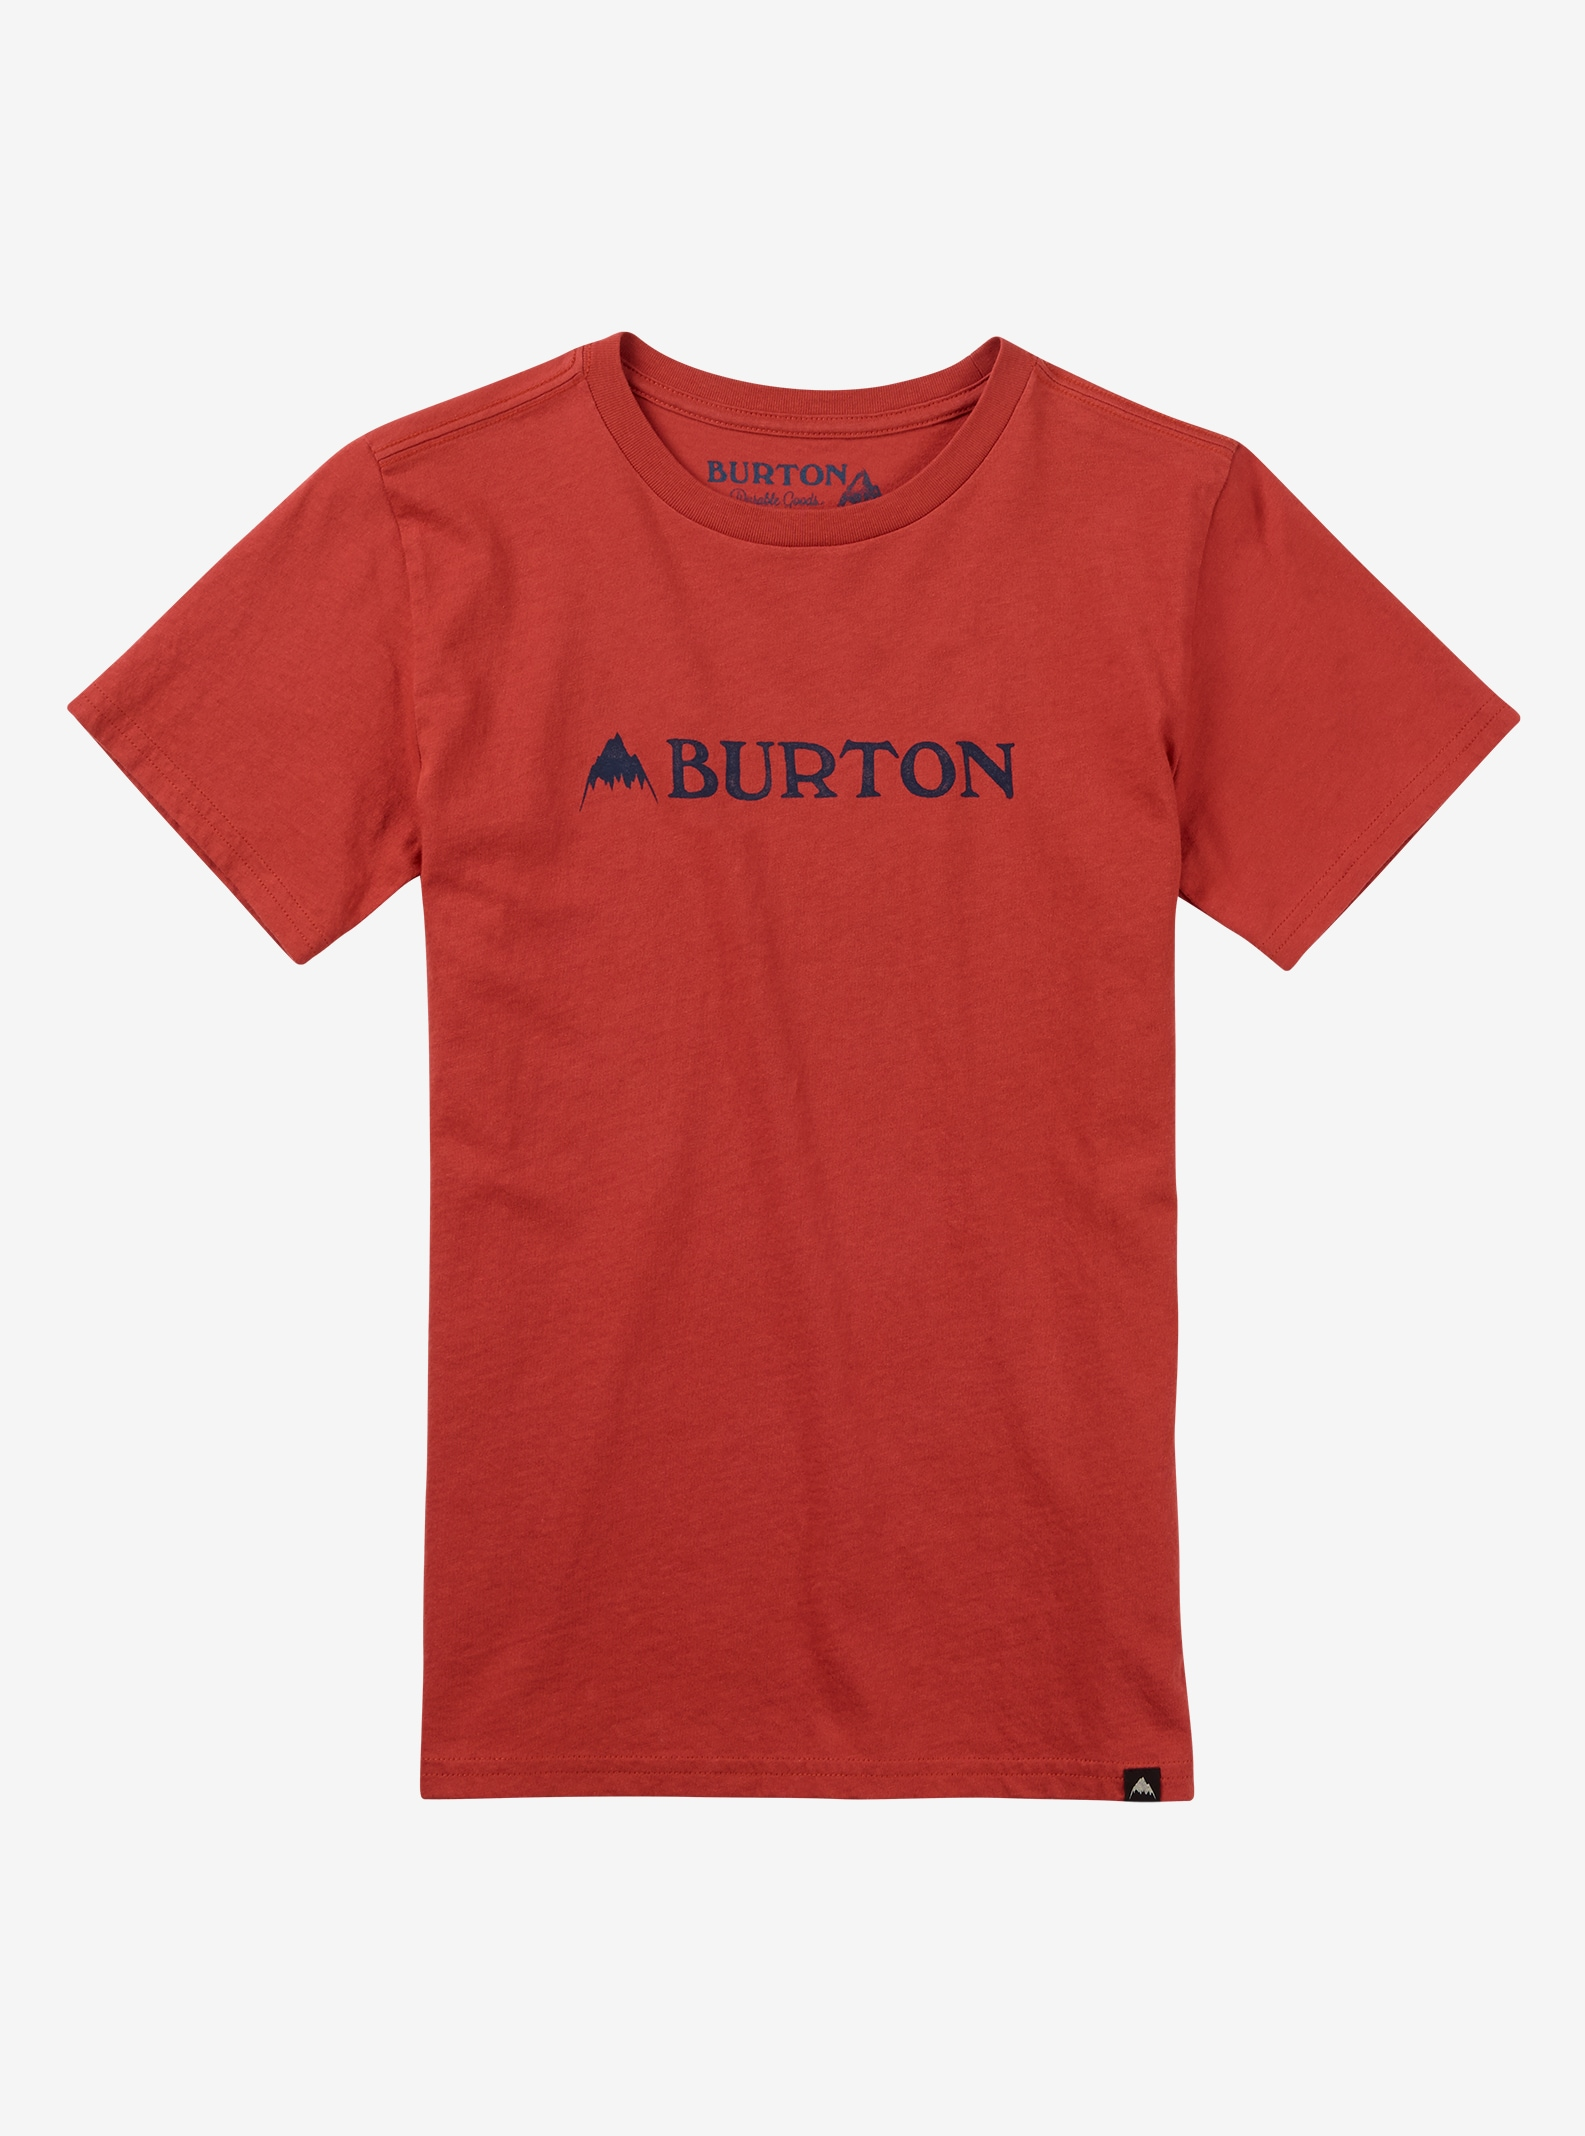 Burton Boys' Mountain Horizontal Short Sleeve T Shirt shown in Tandori